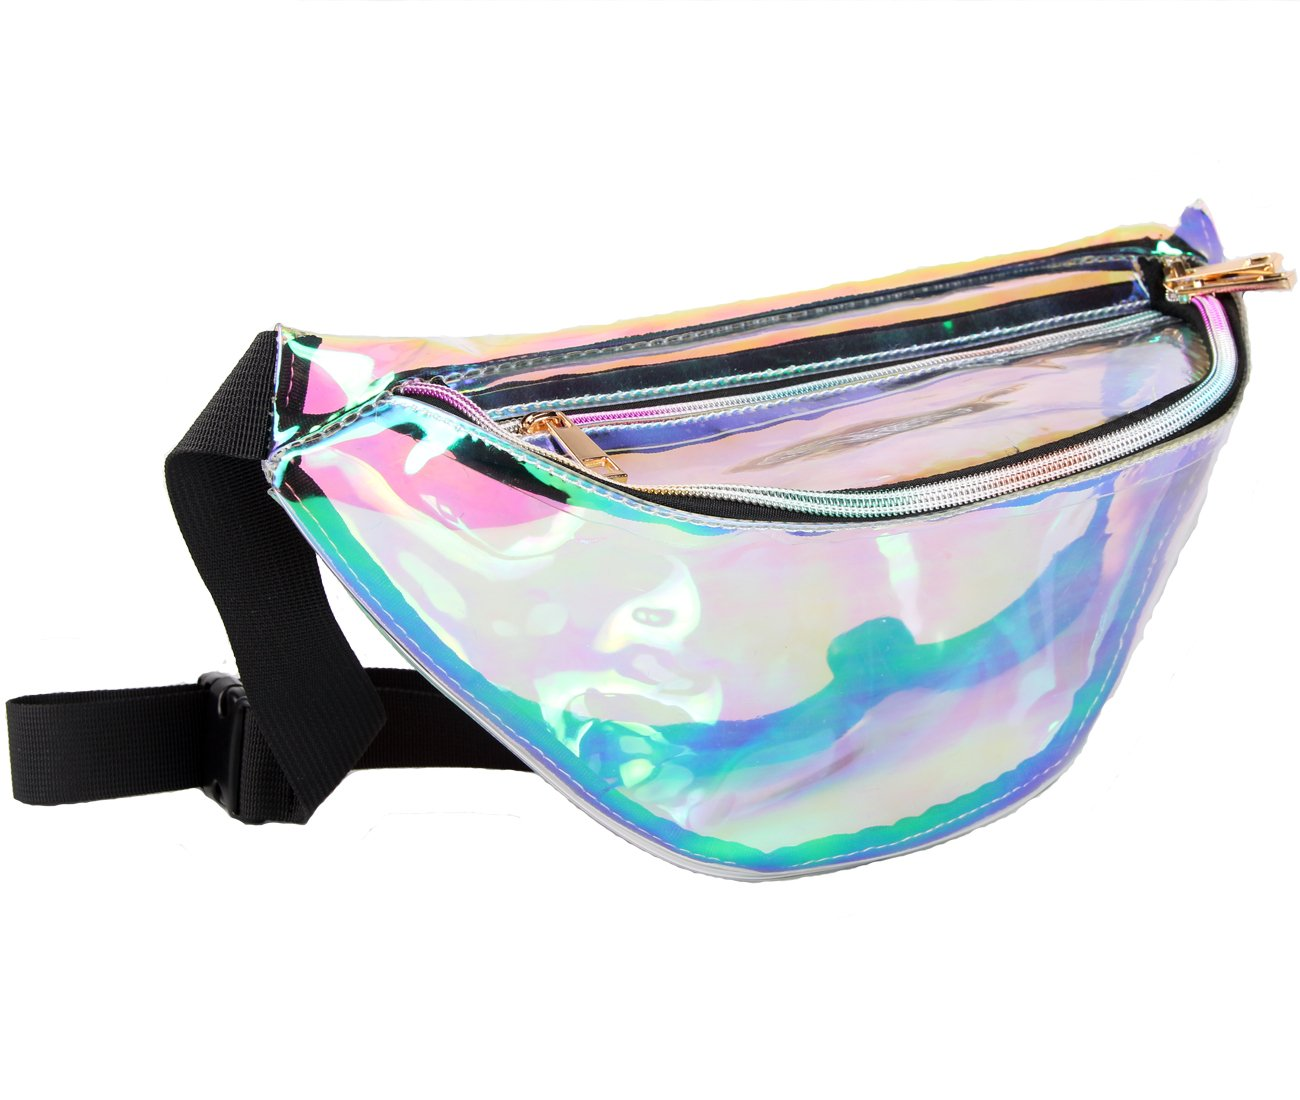 836d9dfefbaa Lorencia Fanny Pack for Women Holographic Fanny Pack Iridescent Cute Waist  Belt Bum Bag Fashion for Rave Festival Events Games